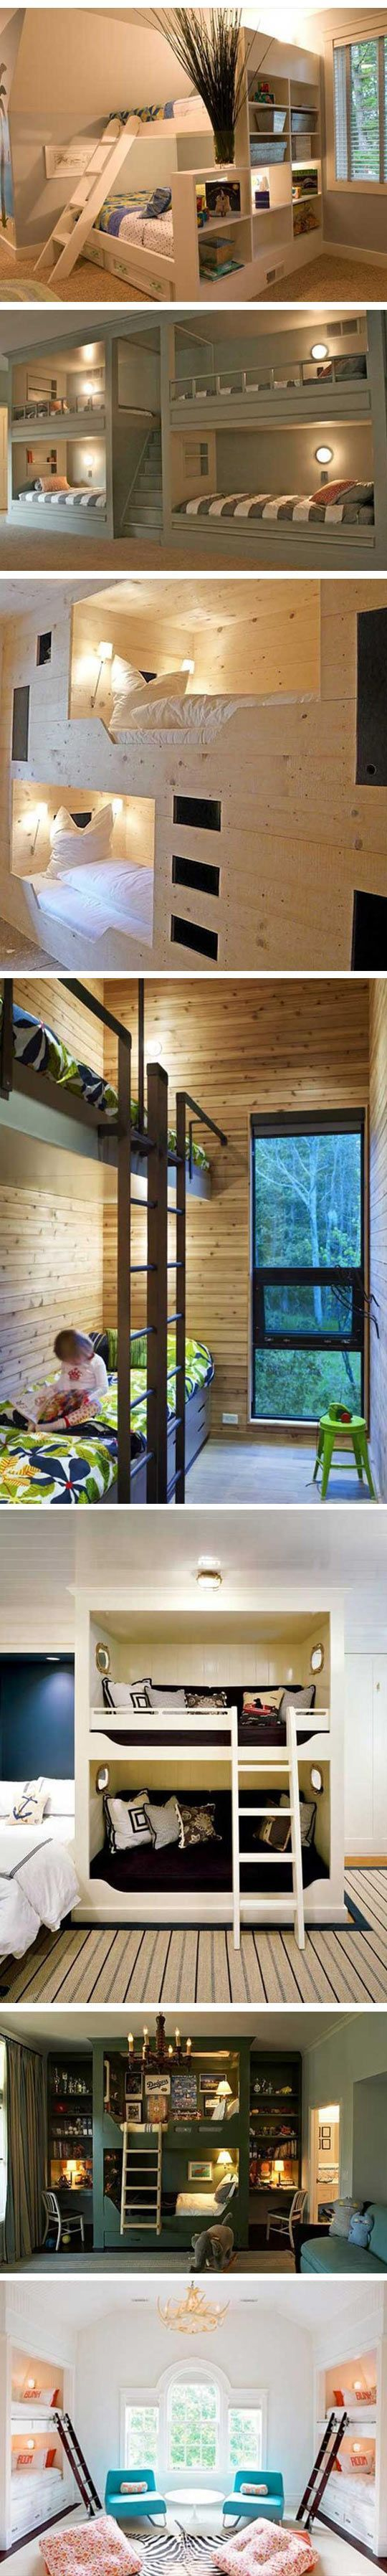 cool bunkbeds ◉ re-pinned by http://www.waterfront-properties.com/pbgoldmarshclub.php